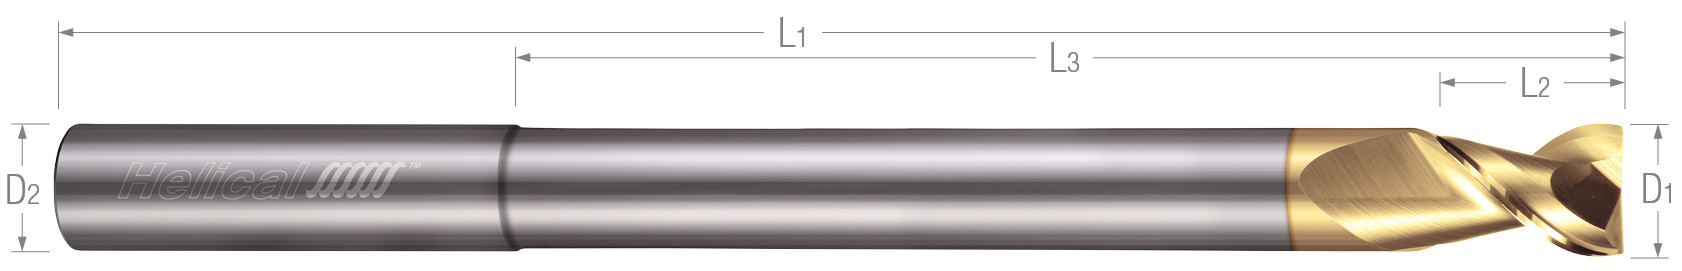 2 Flute, Square - 45° Helix, Reduced Neck